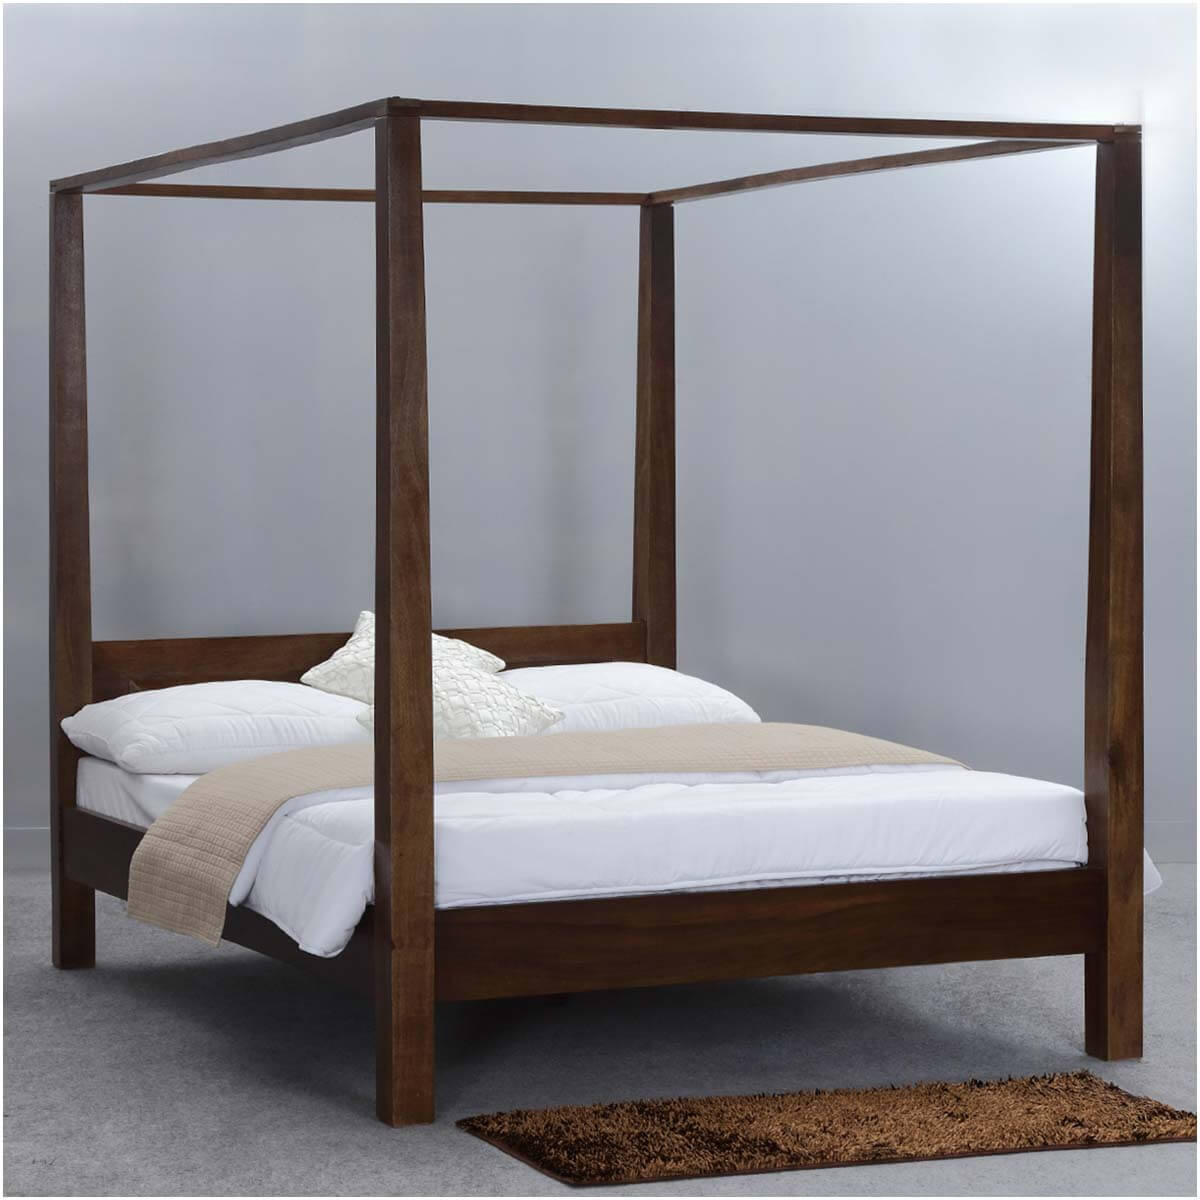 Modern Rustic Philadelphia Solid Wood King Size Canopy Bed